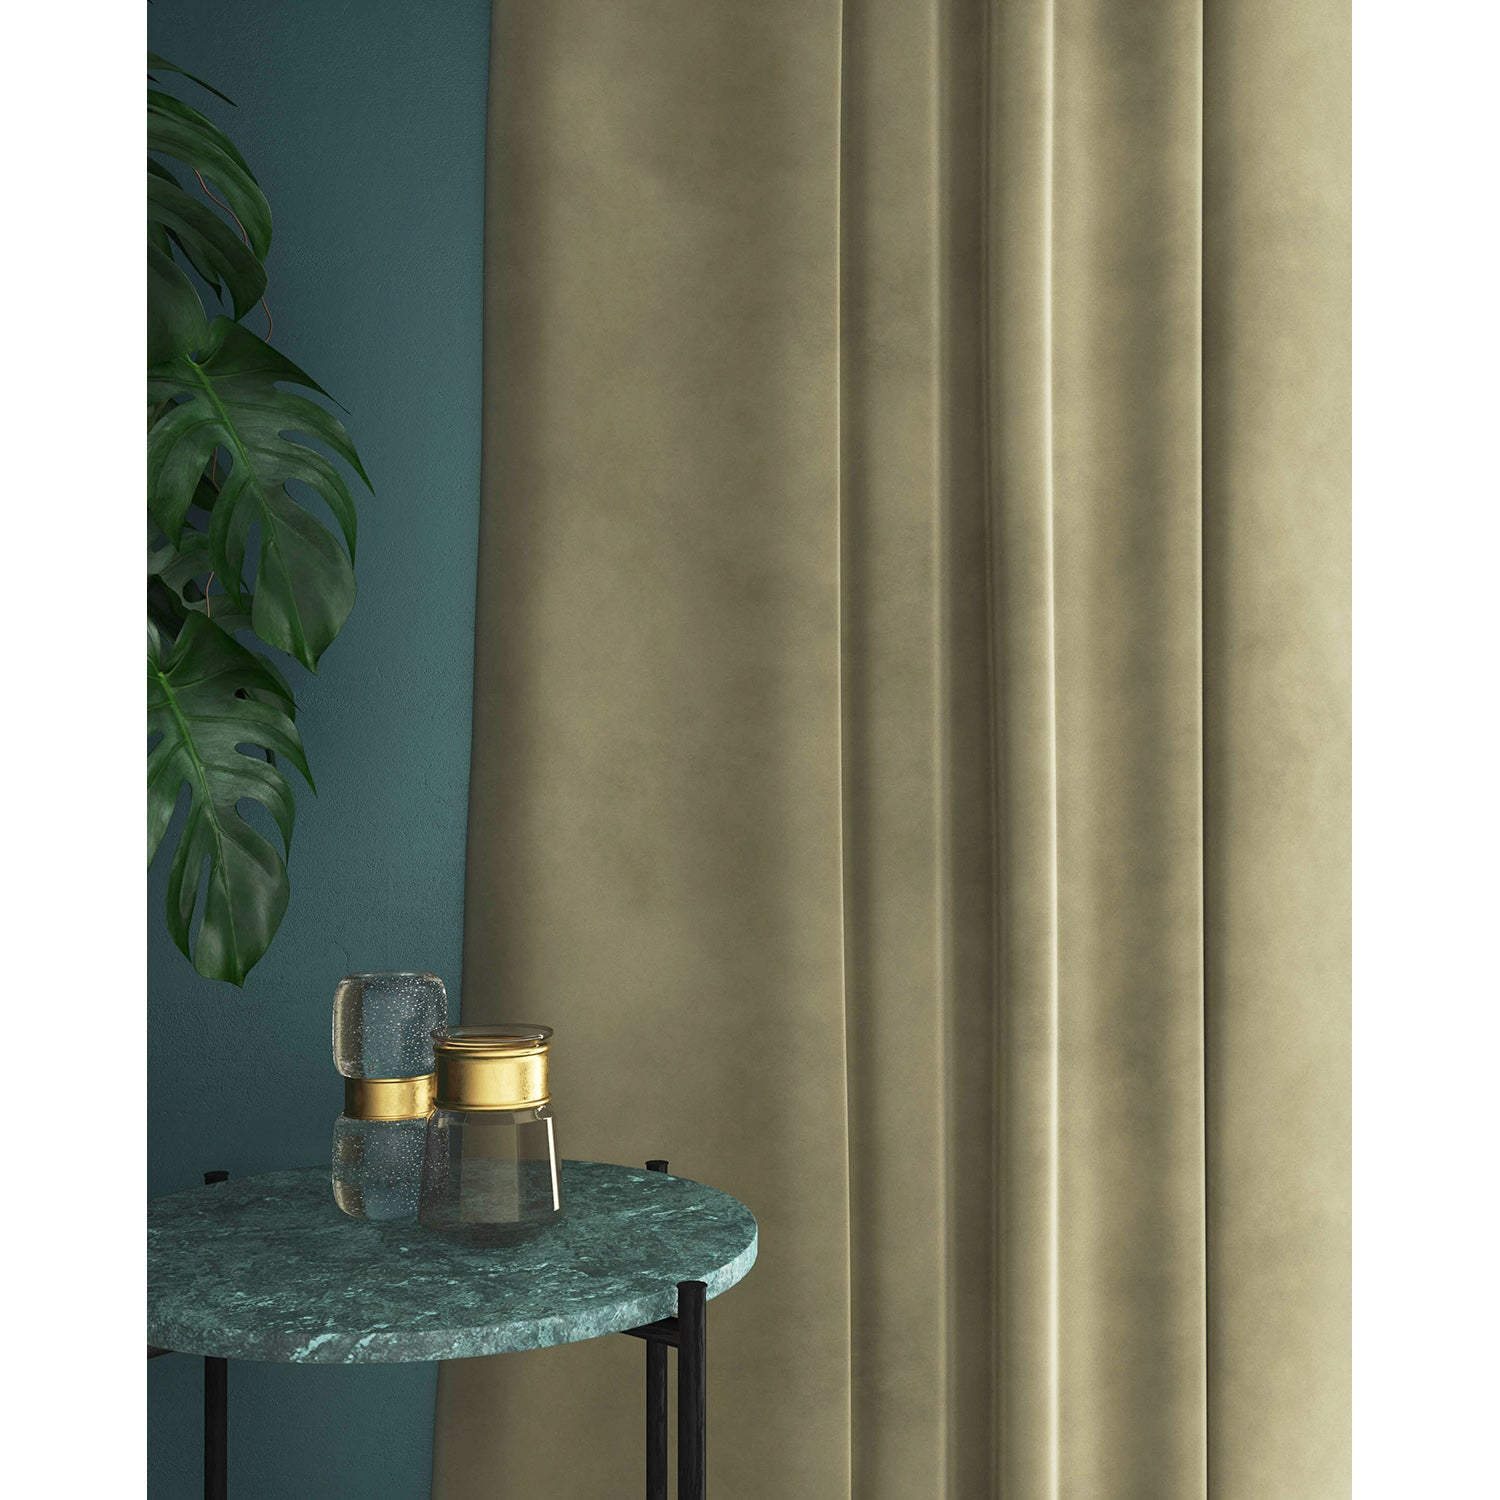 Curtains in a neutral plain velvet fabric with a stain resist finish